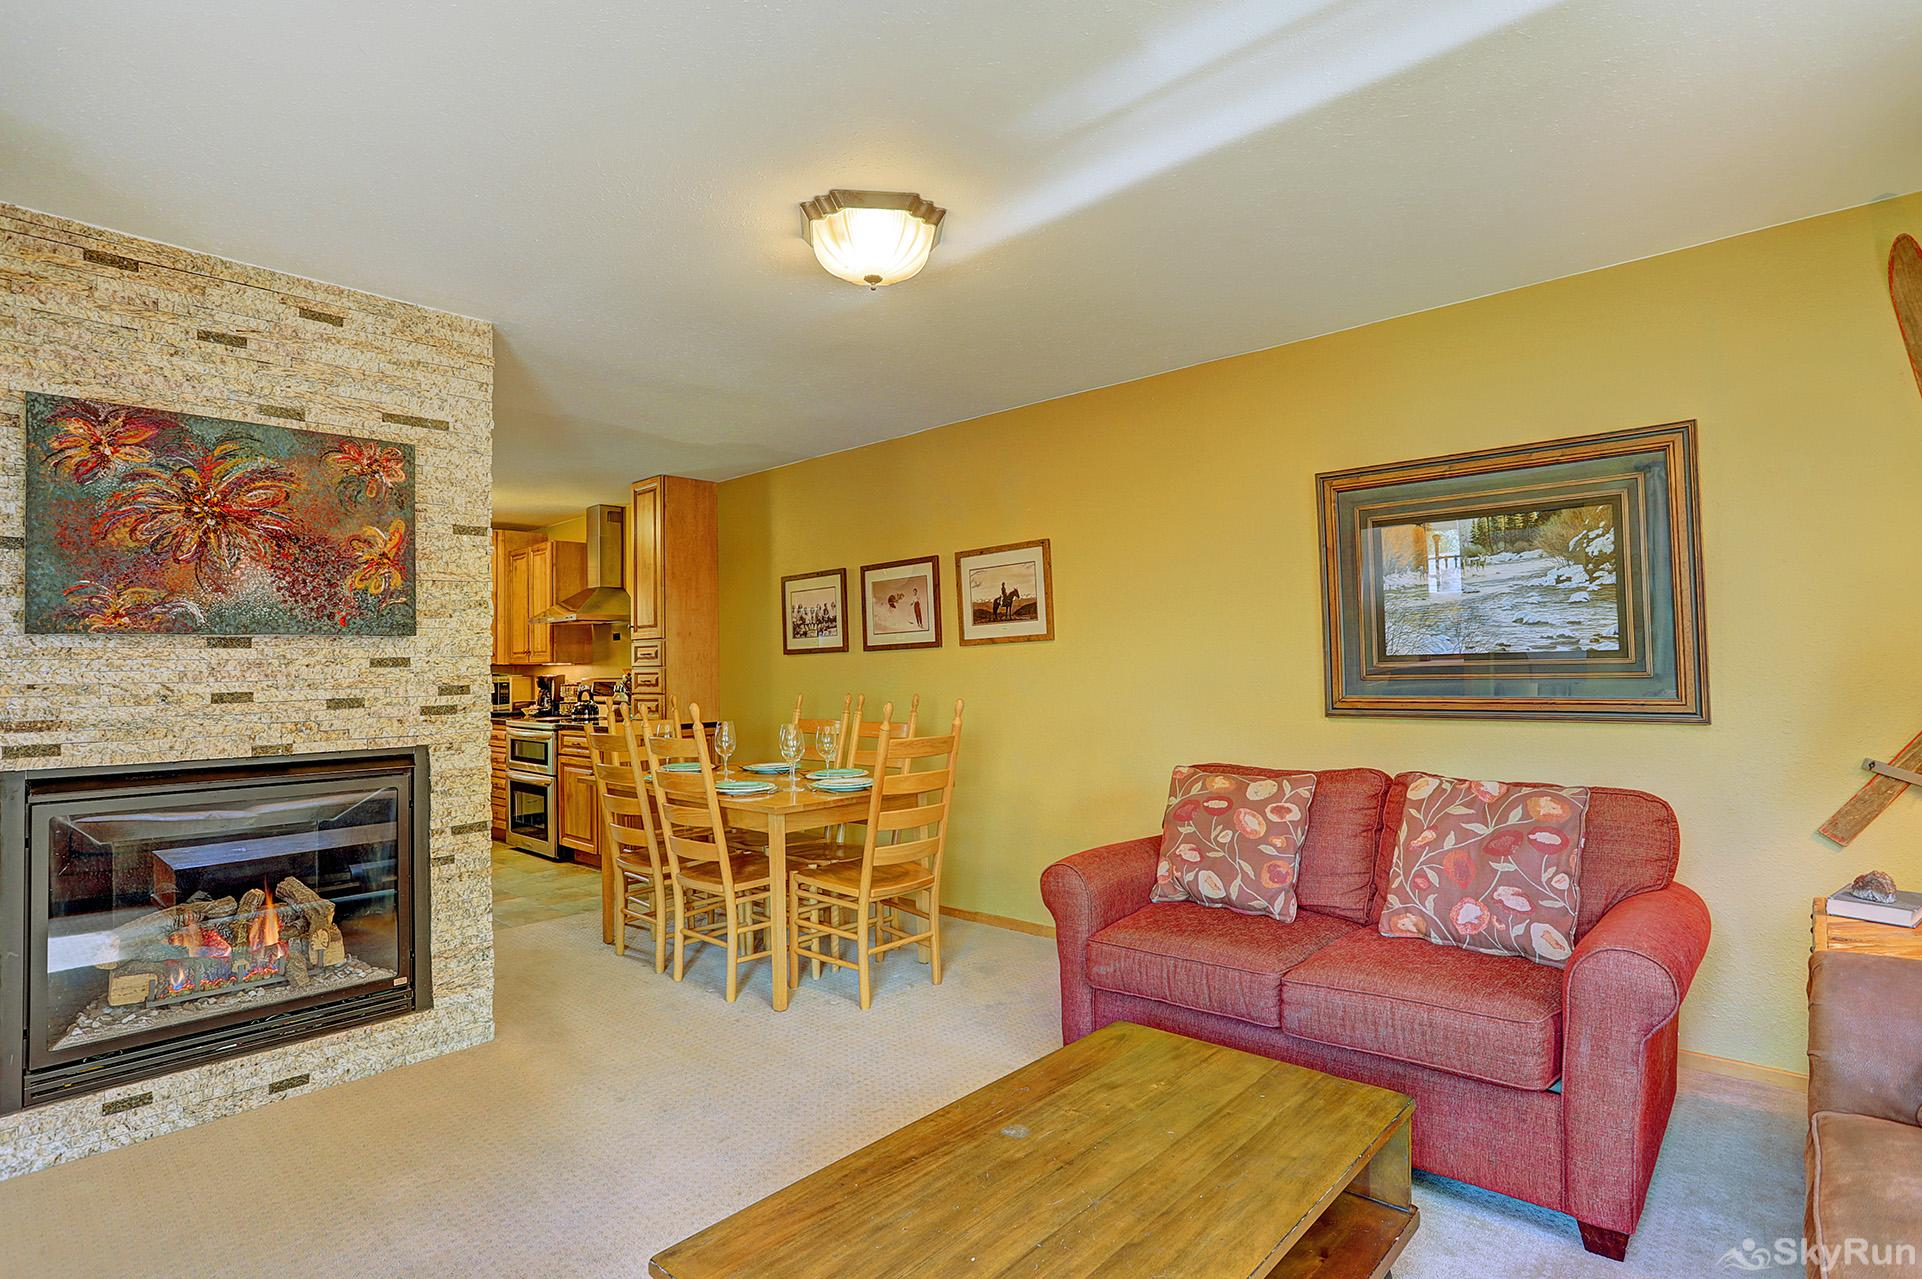 Imperial View Cottage Stay cozy warm by the gas fireplace